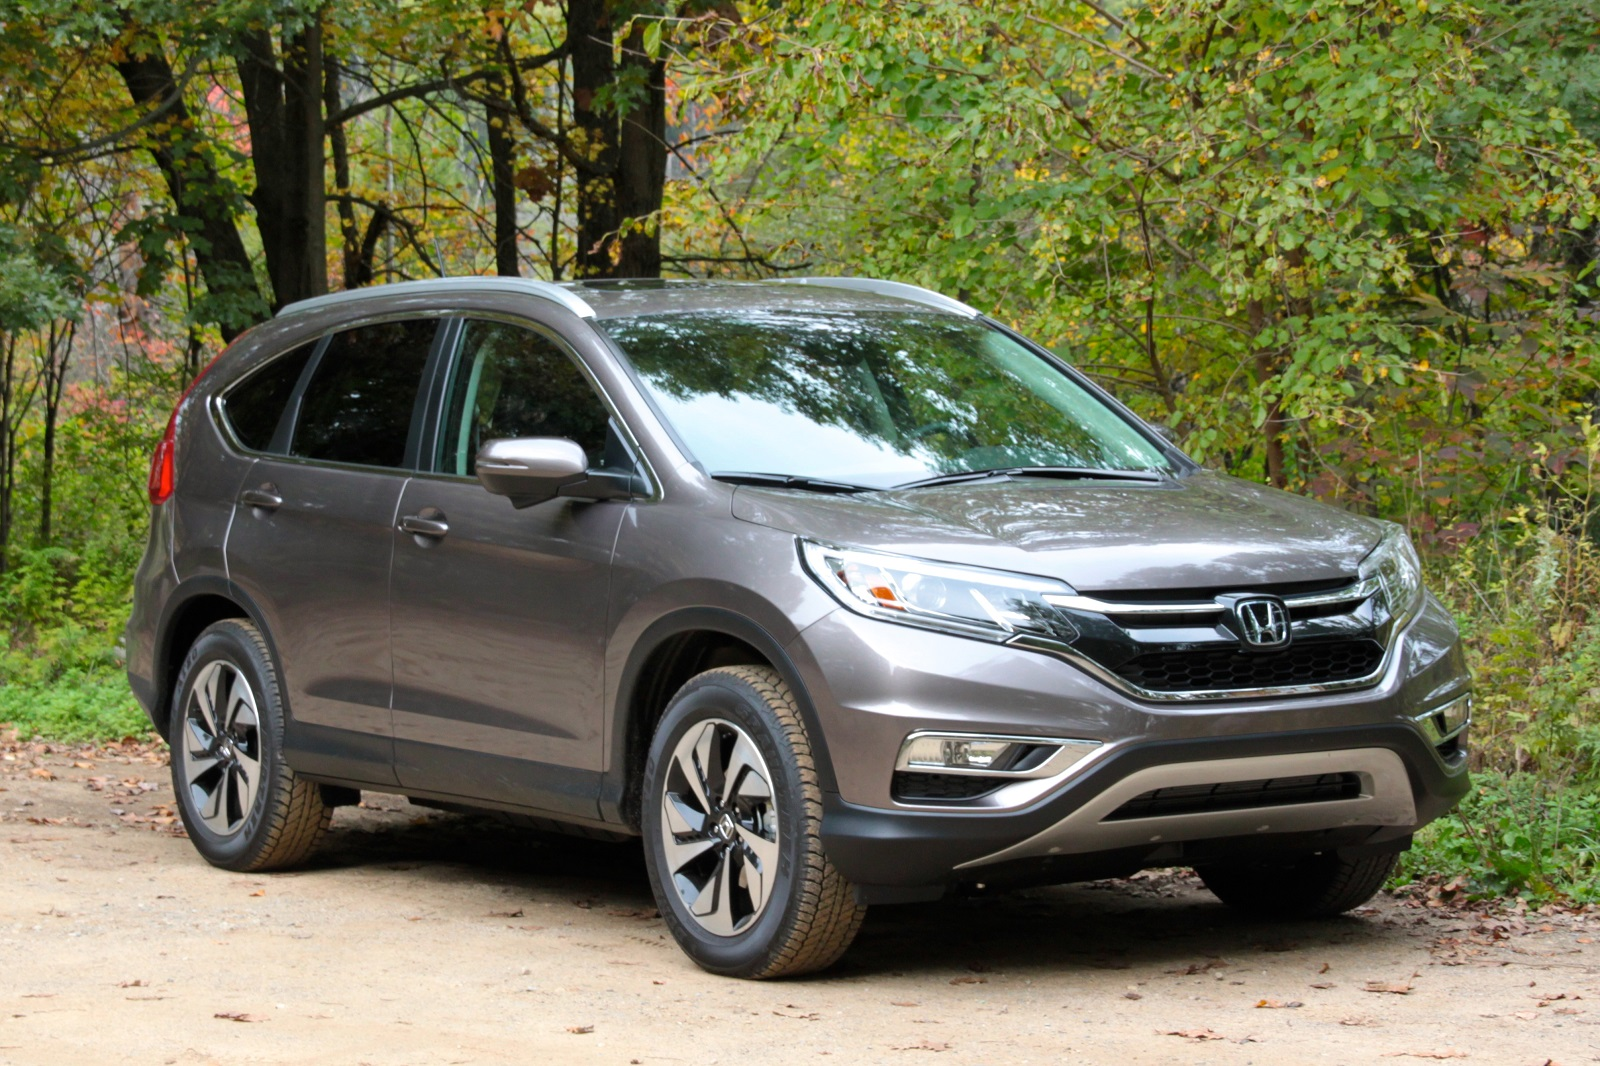 2015 Honda CR-V: Gas Mileage Test Of Updated Crossover SUV